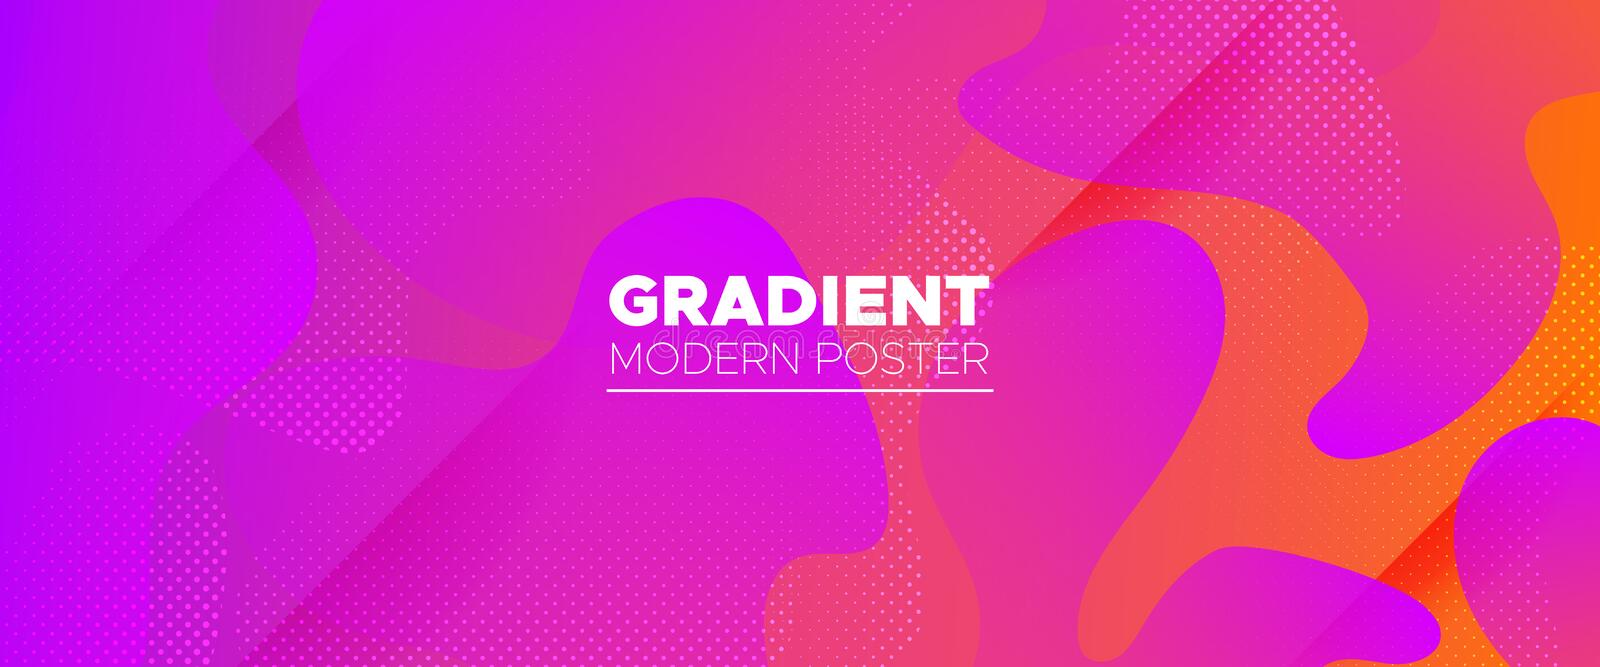 Abstract Flow Design. Neon Gradient Brochure. Orange Graphic Wallpaper. Futuristic Concept. Abstract Wave Shapes. Gradient Poster. Graphic Movement. Digital stock illustration